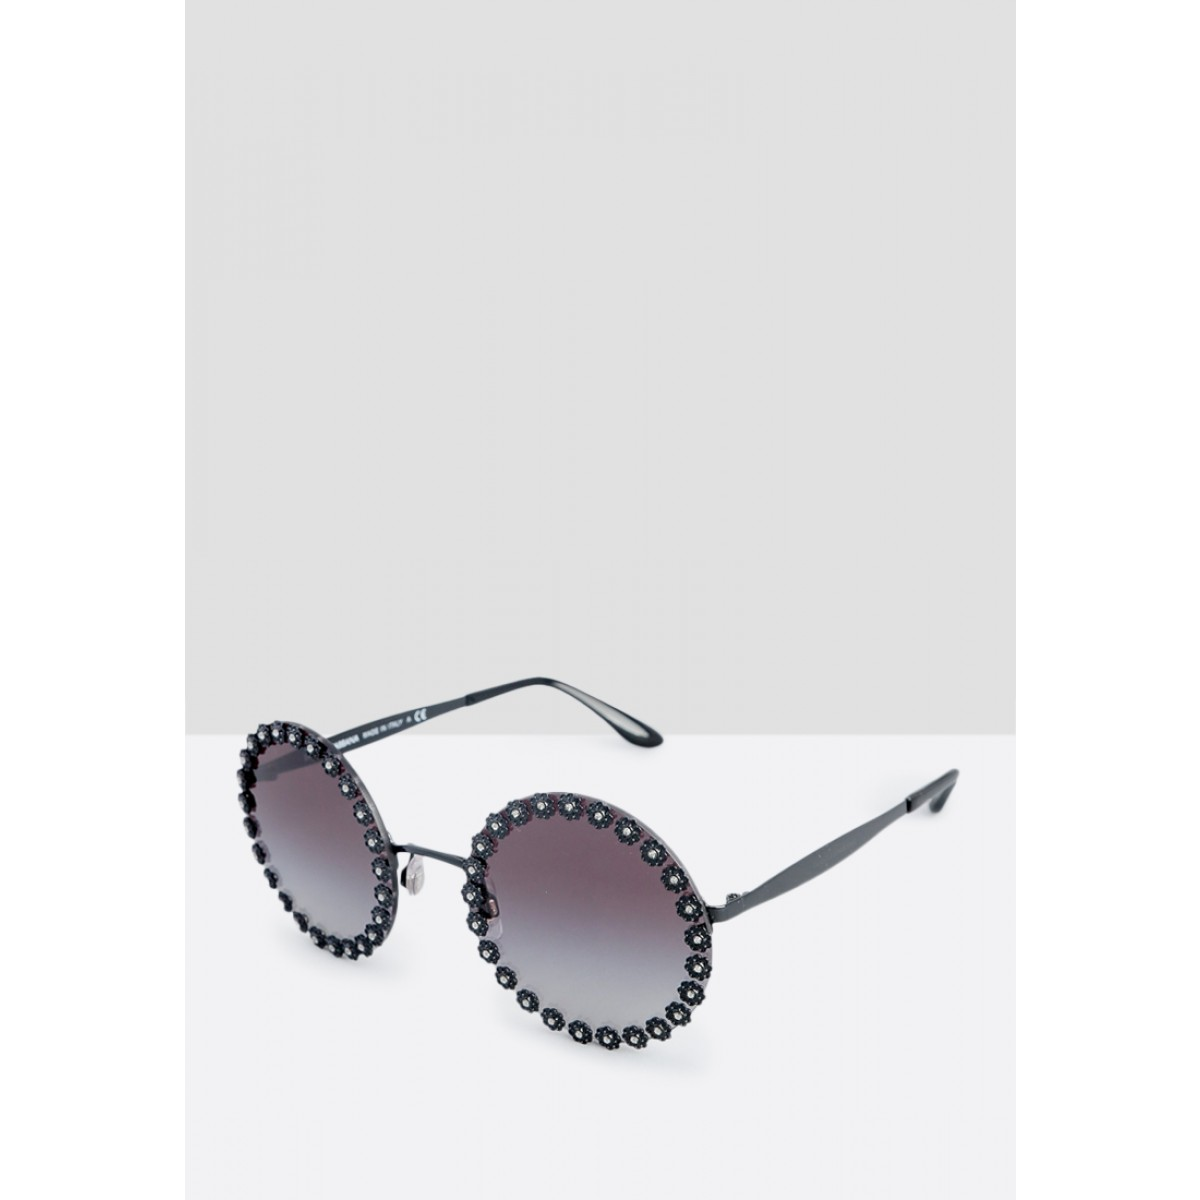 d18949319d36 Dolce   Gabbana Black Round Women Sunglasses DG2173B-01 8G-56. Be the first  to review this product